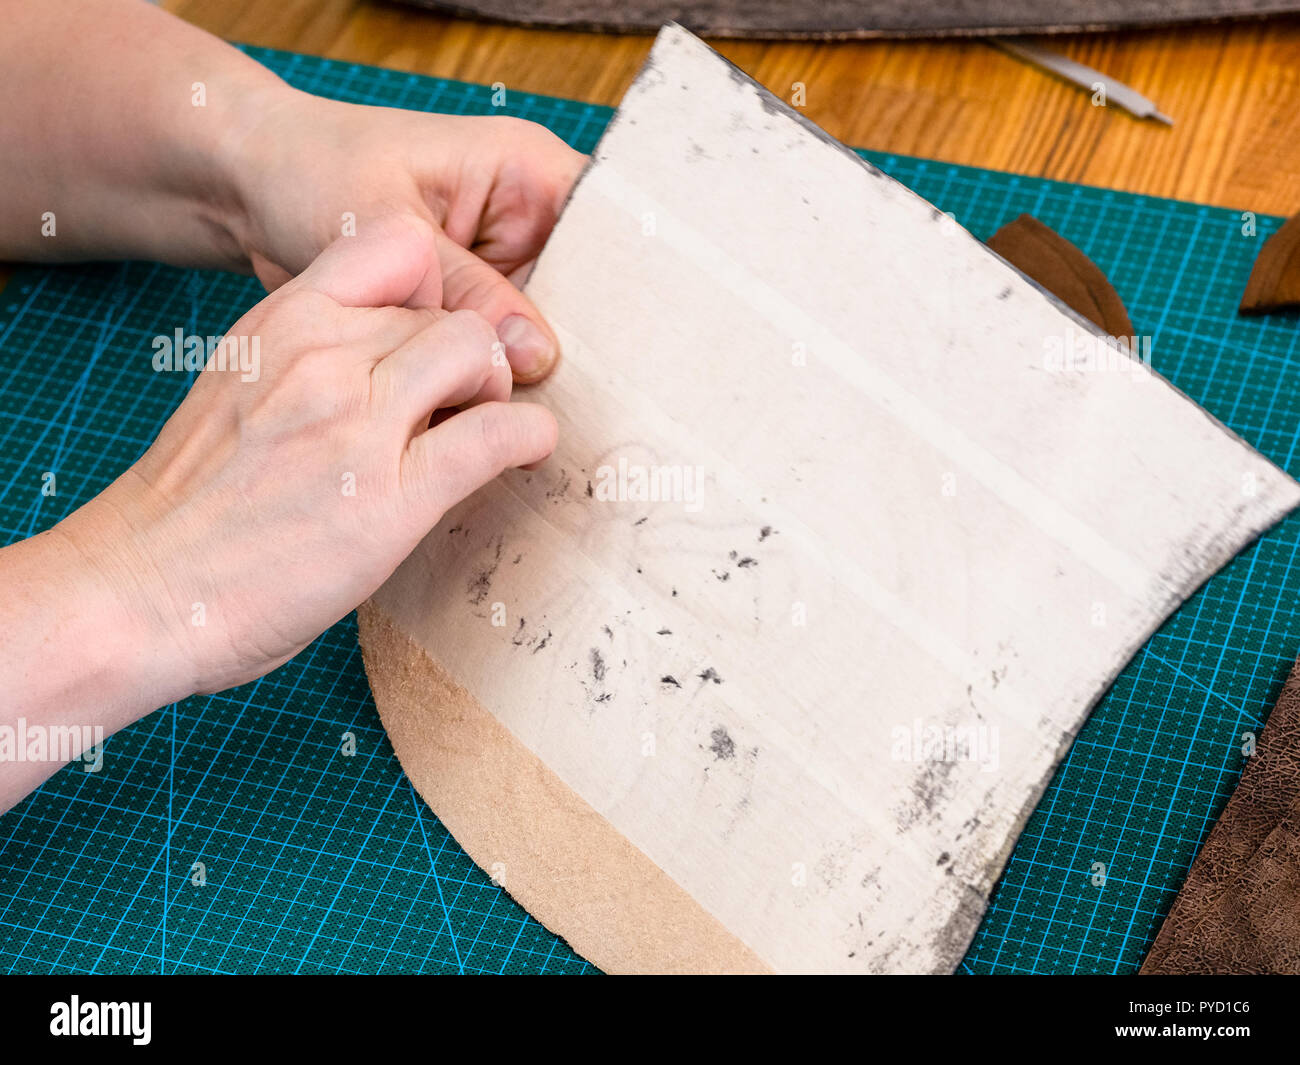 workshop of making the carved leather bag - craftsman removes the protective fabric from the back side of leather item of the handbag - Stock Image